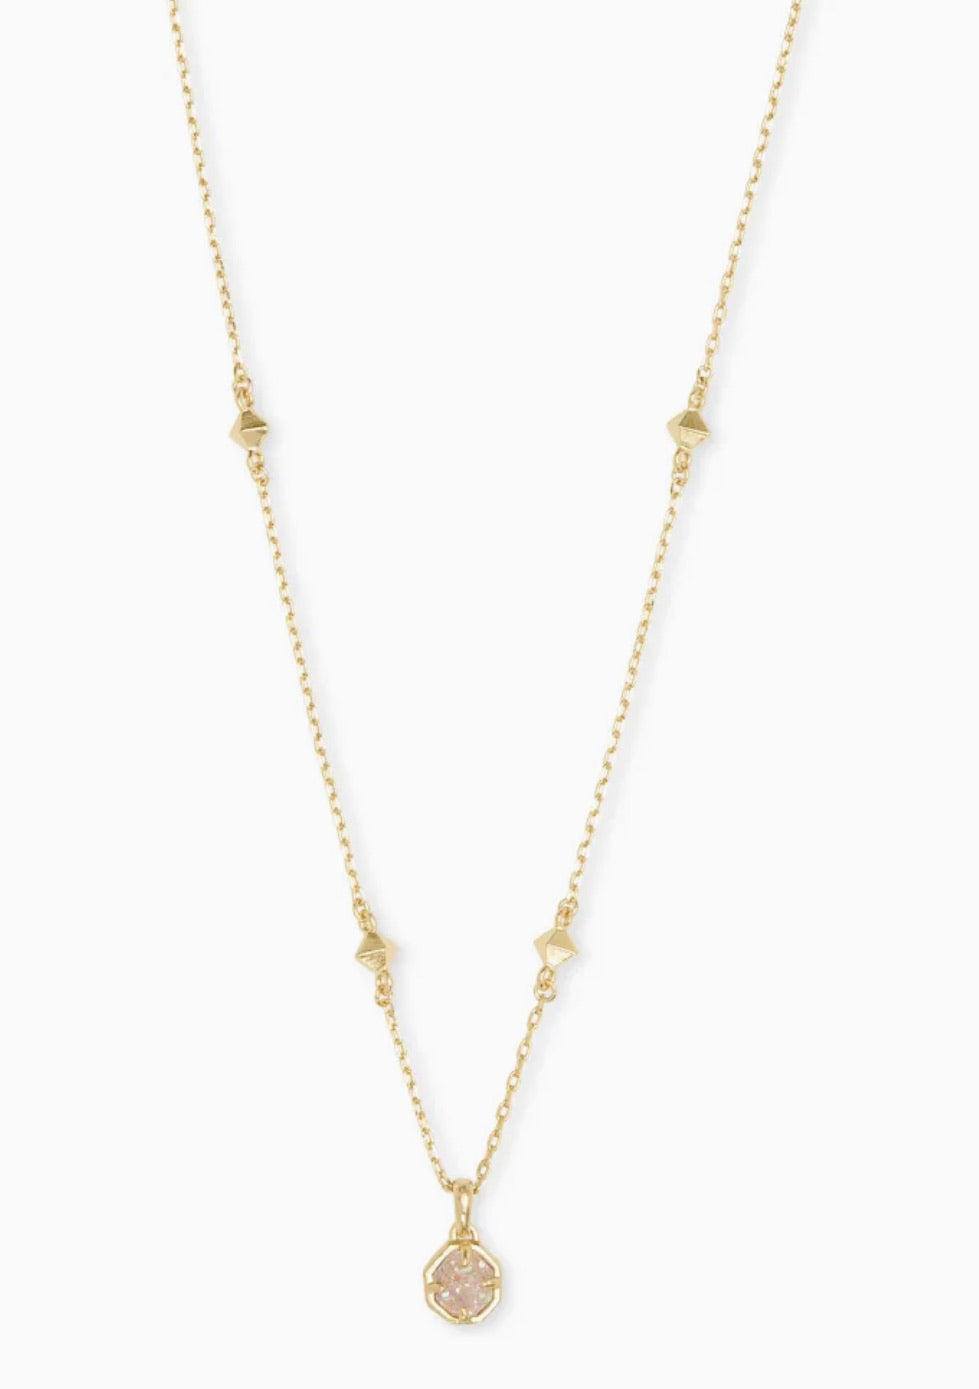 Kendra Scott Nola Gold Pendant Necklace *multiple colors available